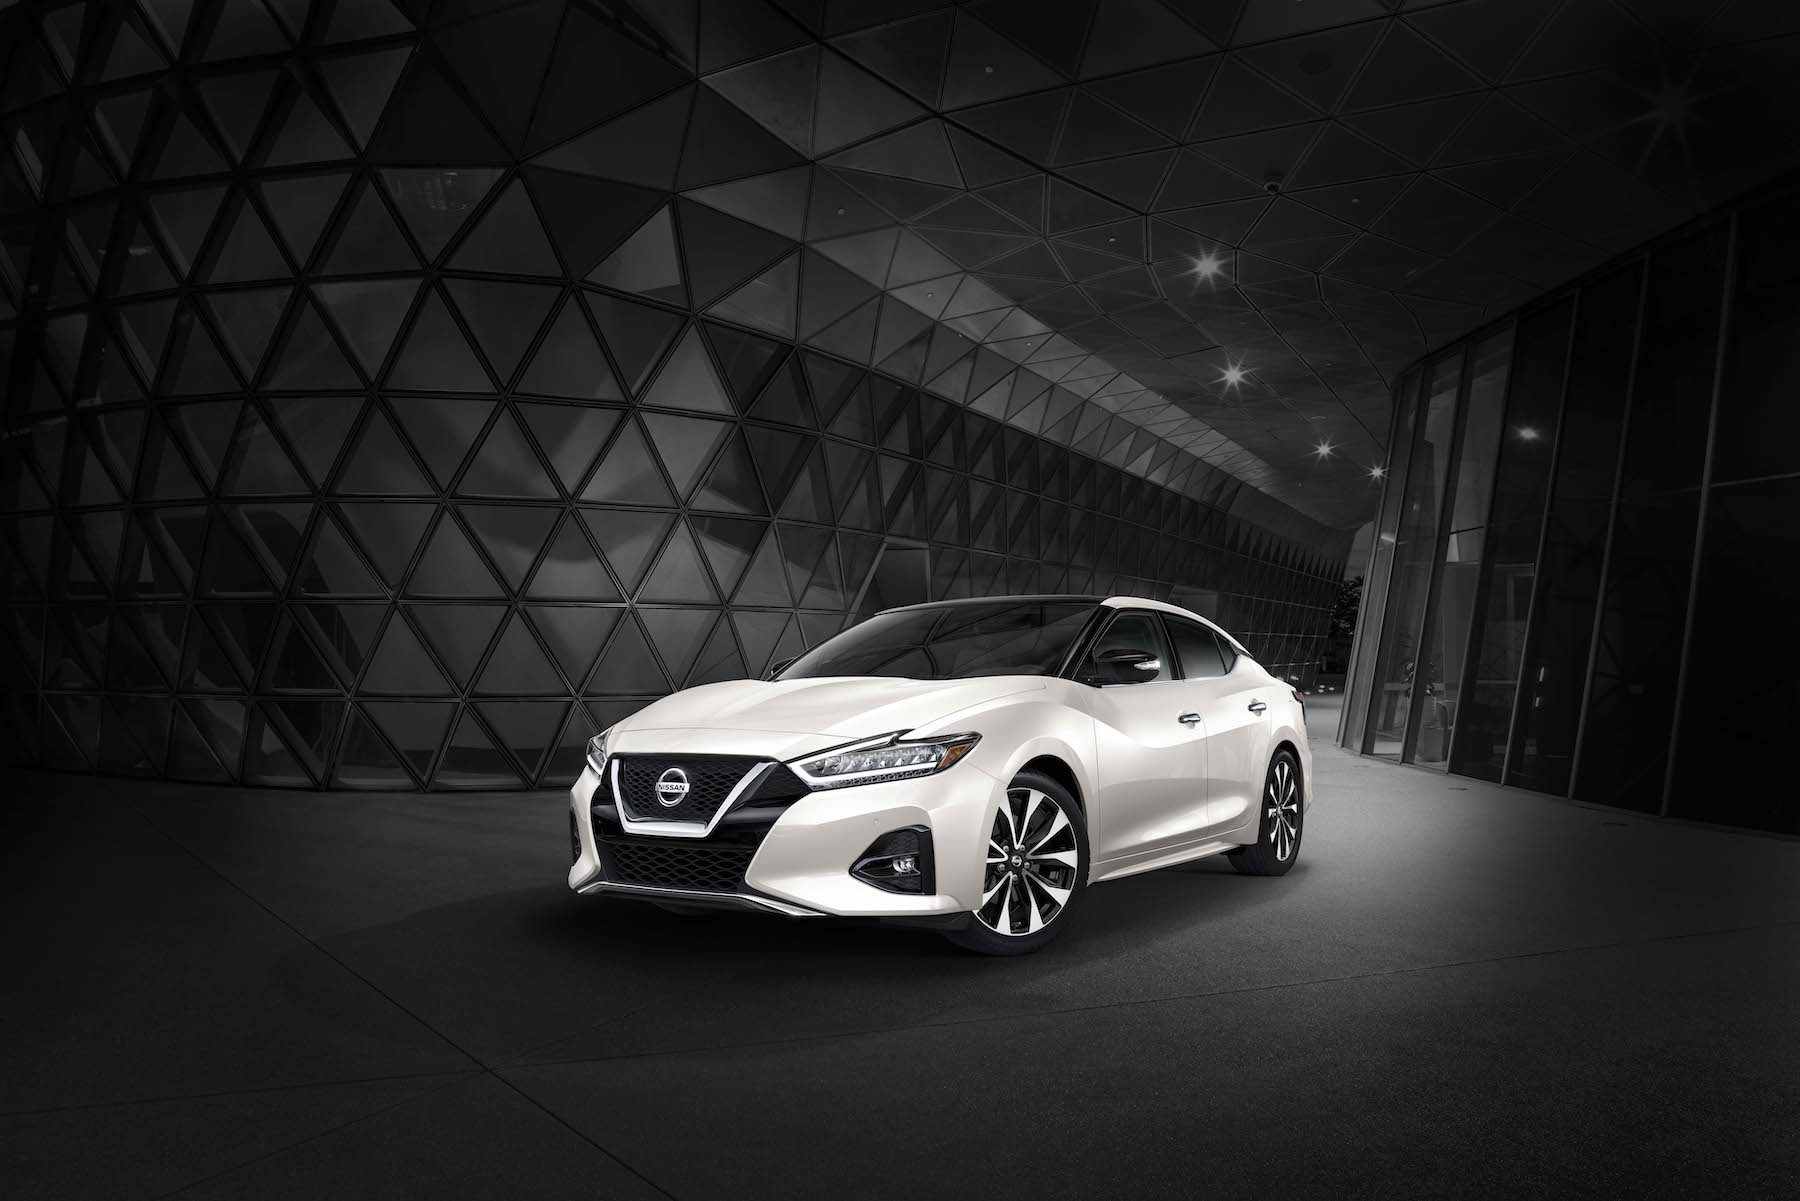 Performance Features of the 2019 Nissan Maxima at Hanover Nissan of Hanover | White 2019 nissan maxima parked on side of building